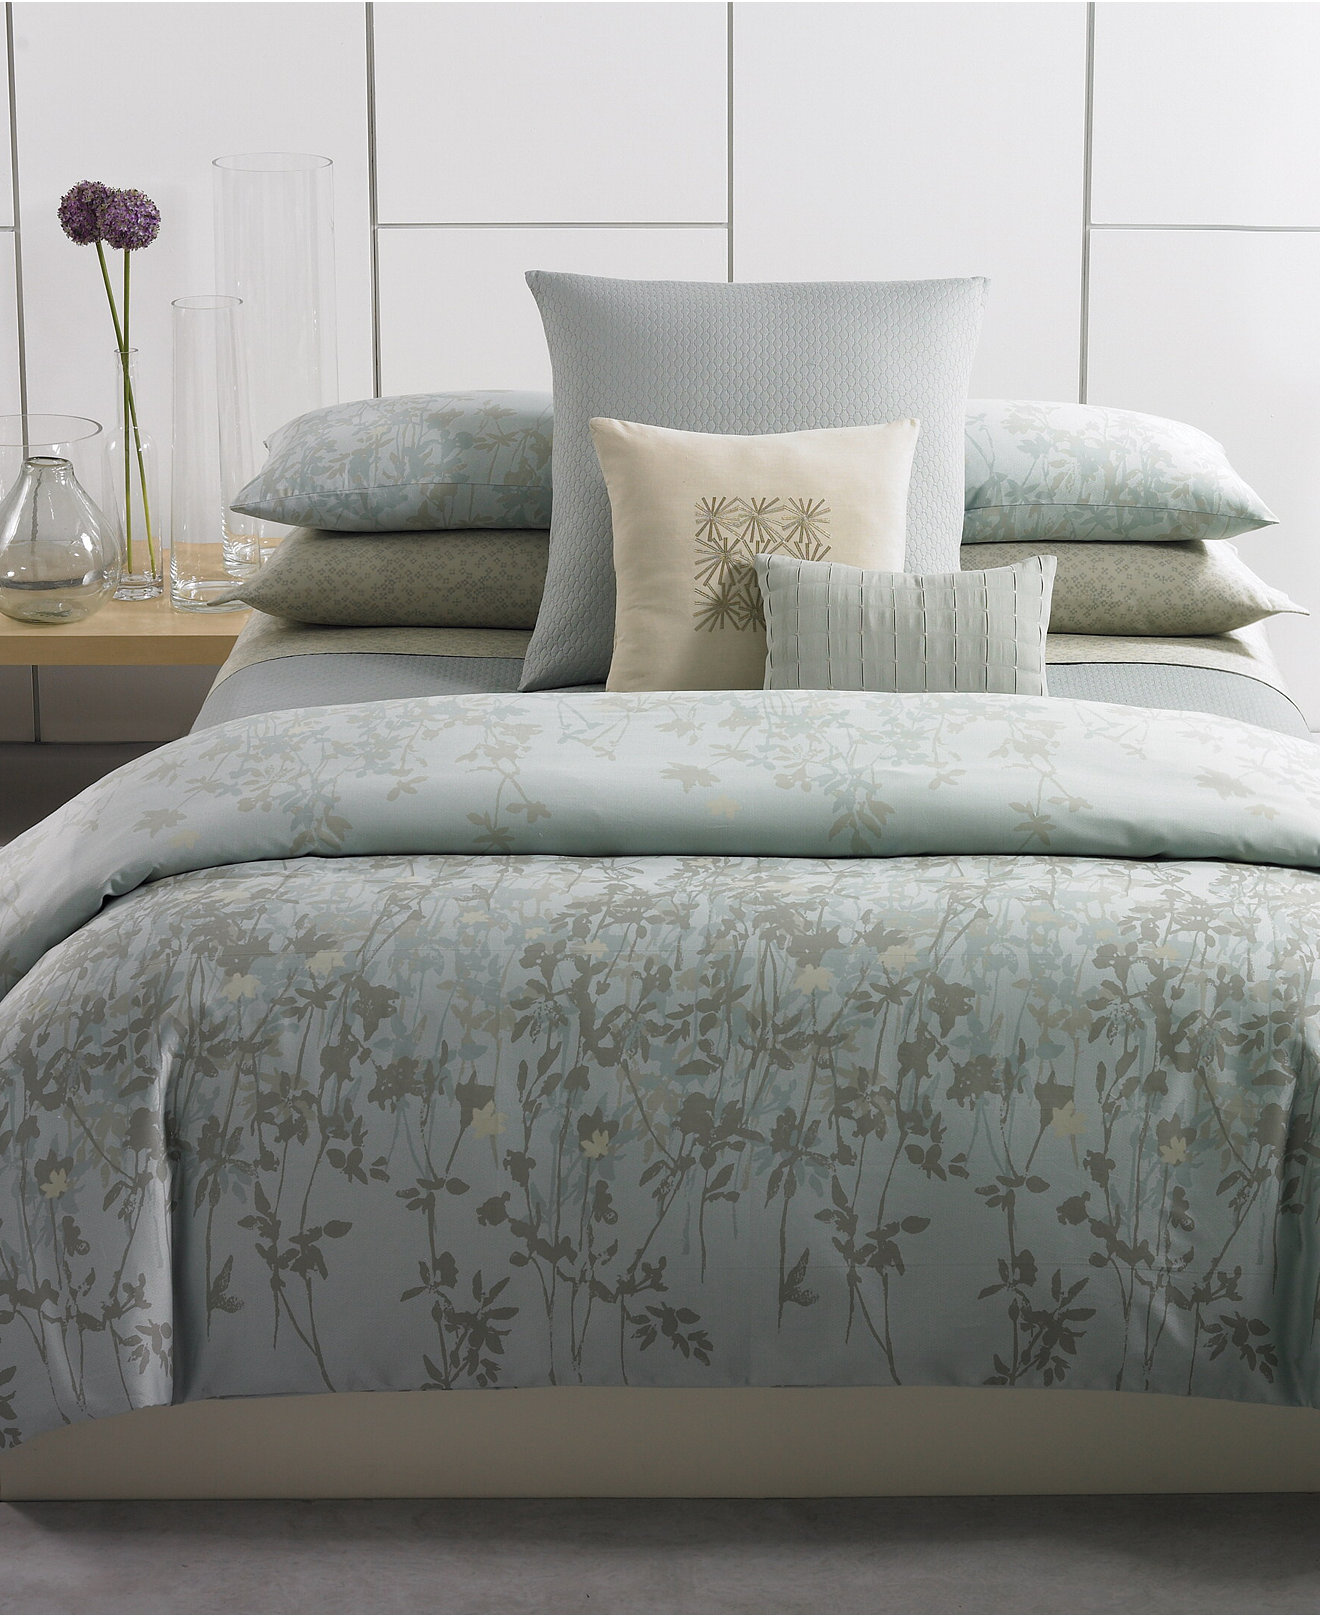 Calvin Klein Bedroom Furniture Closeout Calvin Klein Marin Comforter And Duvet Cover Sets